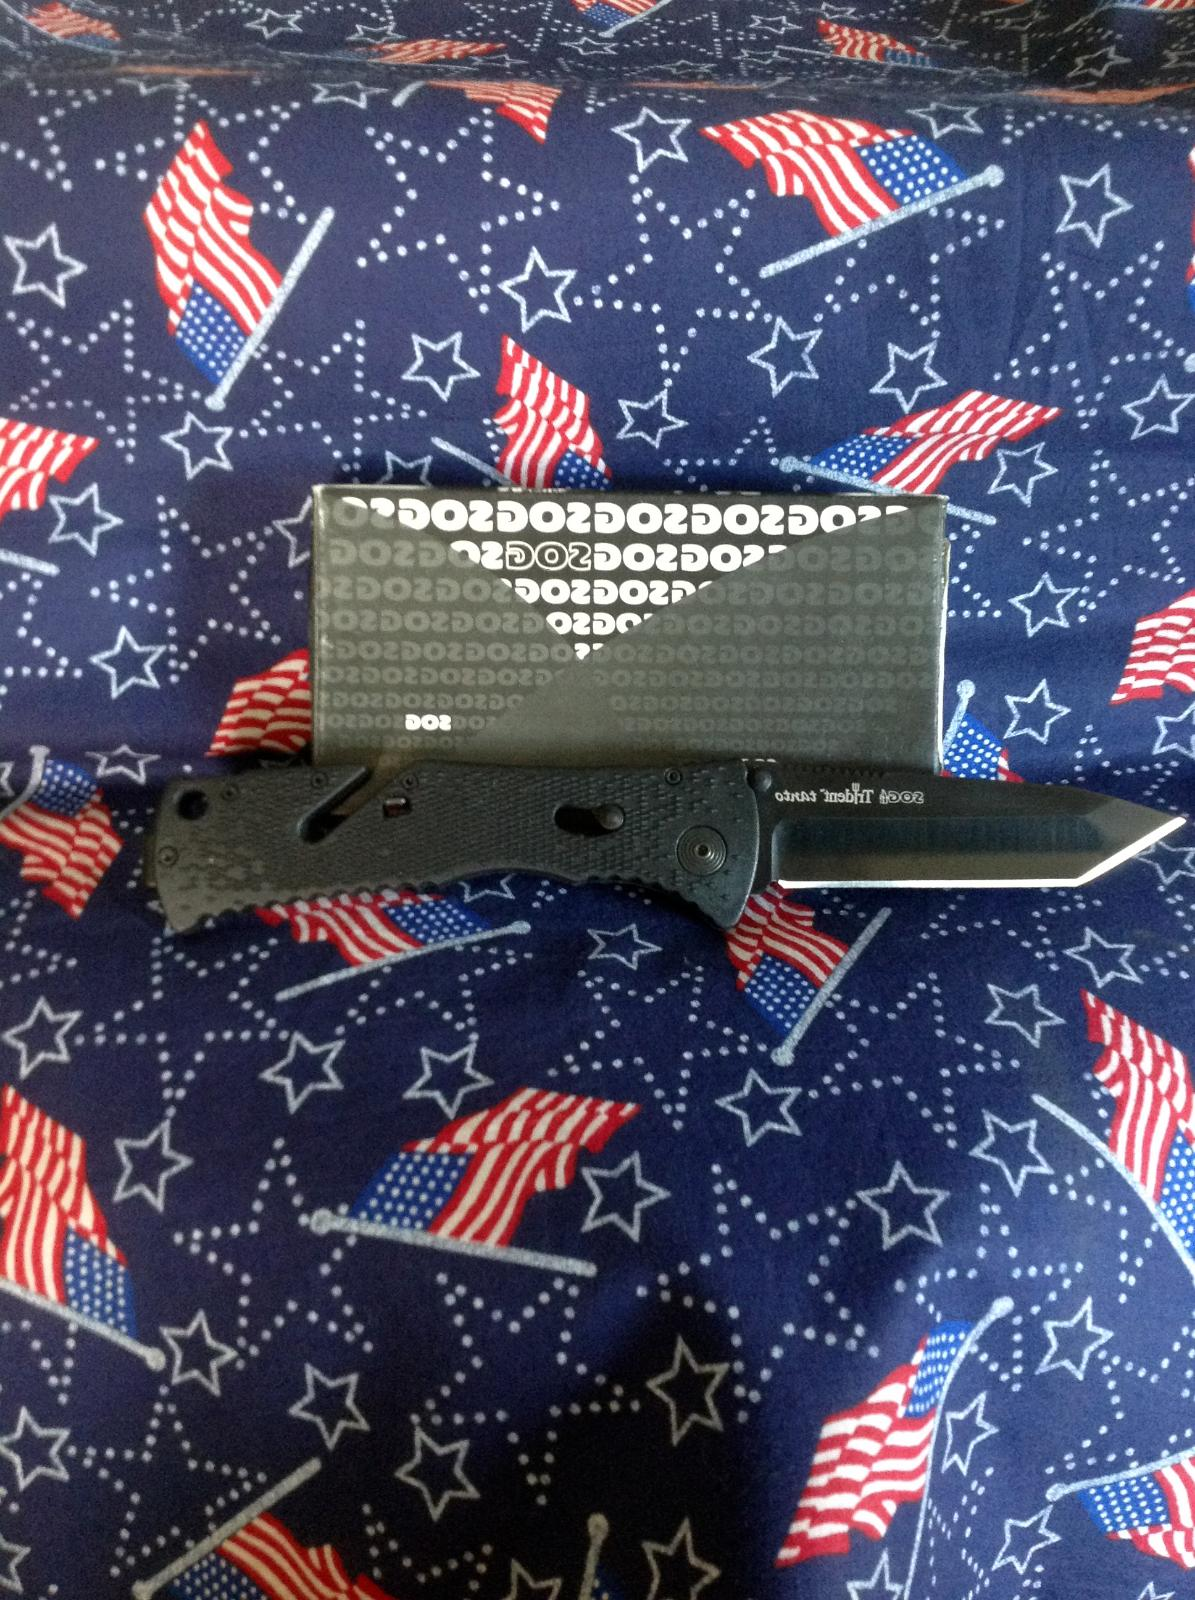 trident assisted folding knife tf7